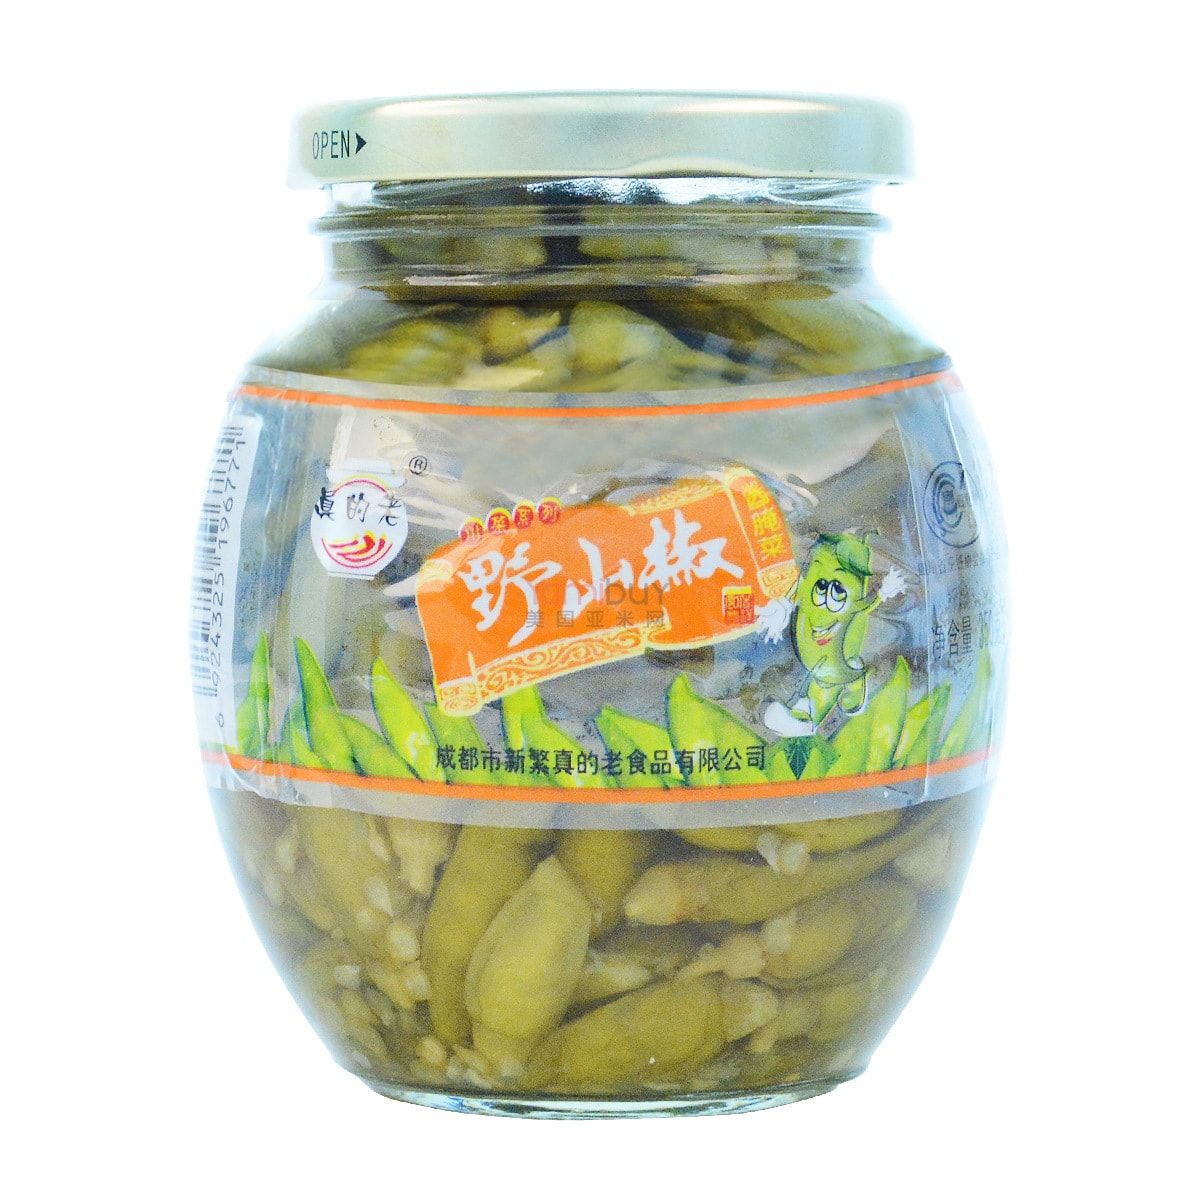 ZHENDELAO Pickled Wild Pepper 350g